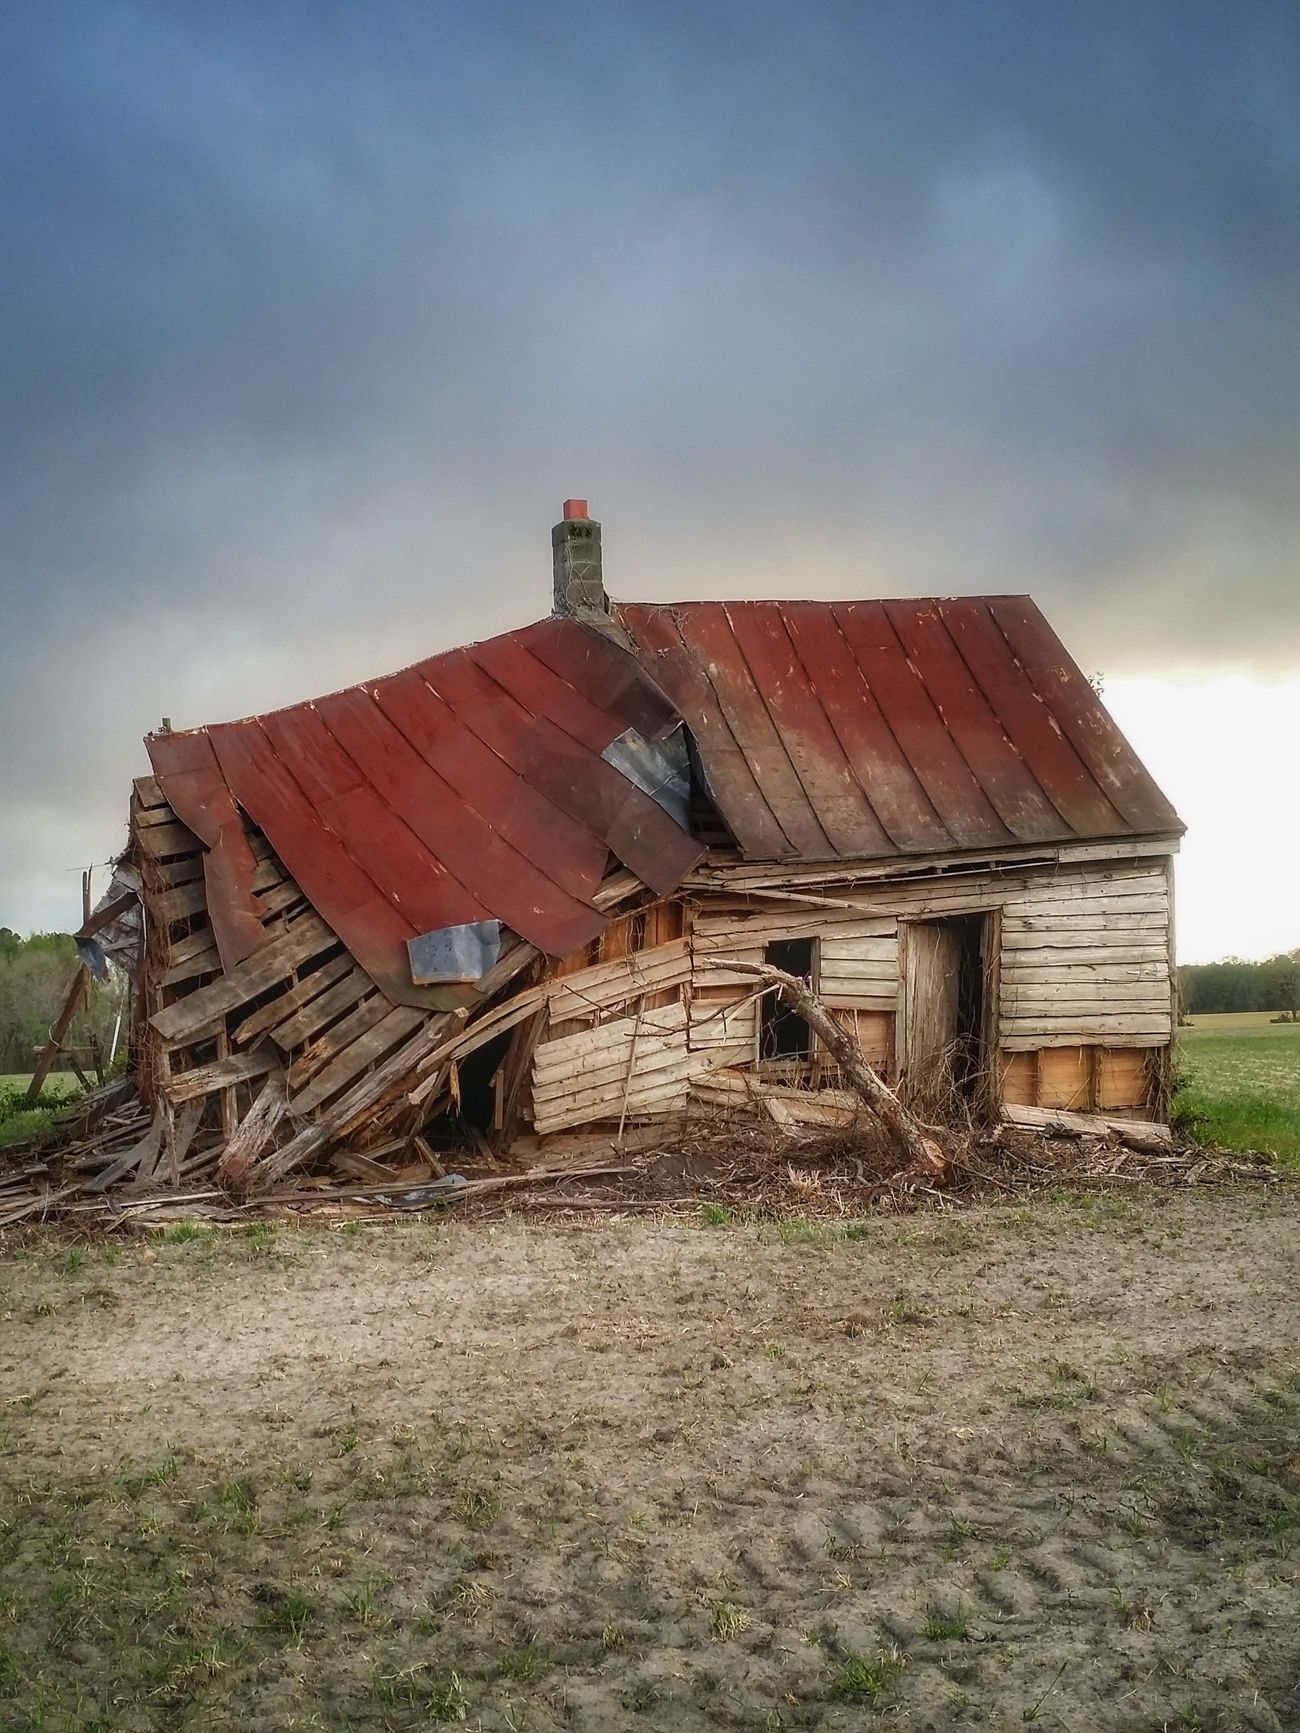 Bowing out gracefully... No People Nothingisordinary Oldhouselove Rural Exploration Abandoned House Getty Images Countryside Landscape Sky And Clouds Eye4photography  Countryside Derelict & Abandoned Atmospheric Moody Broken Down House Deserted Rurex